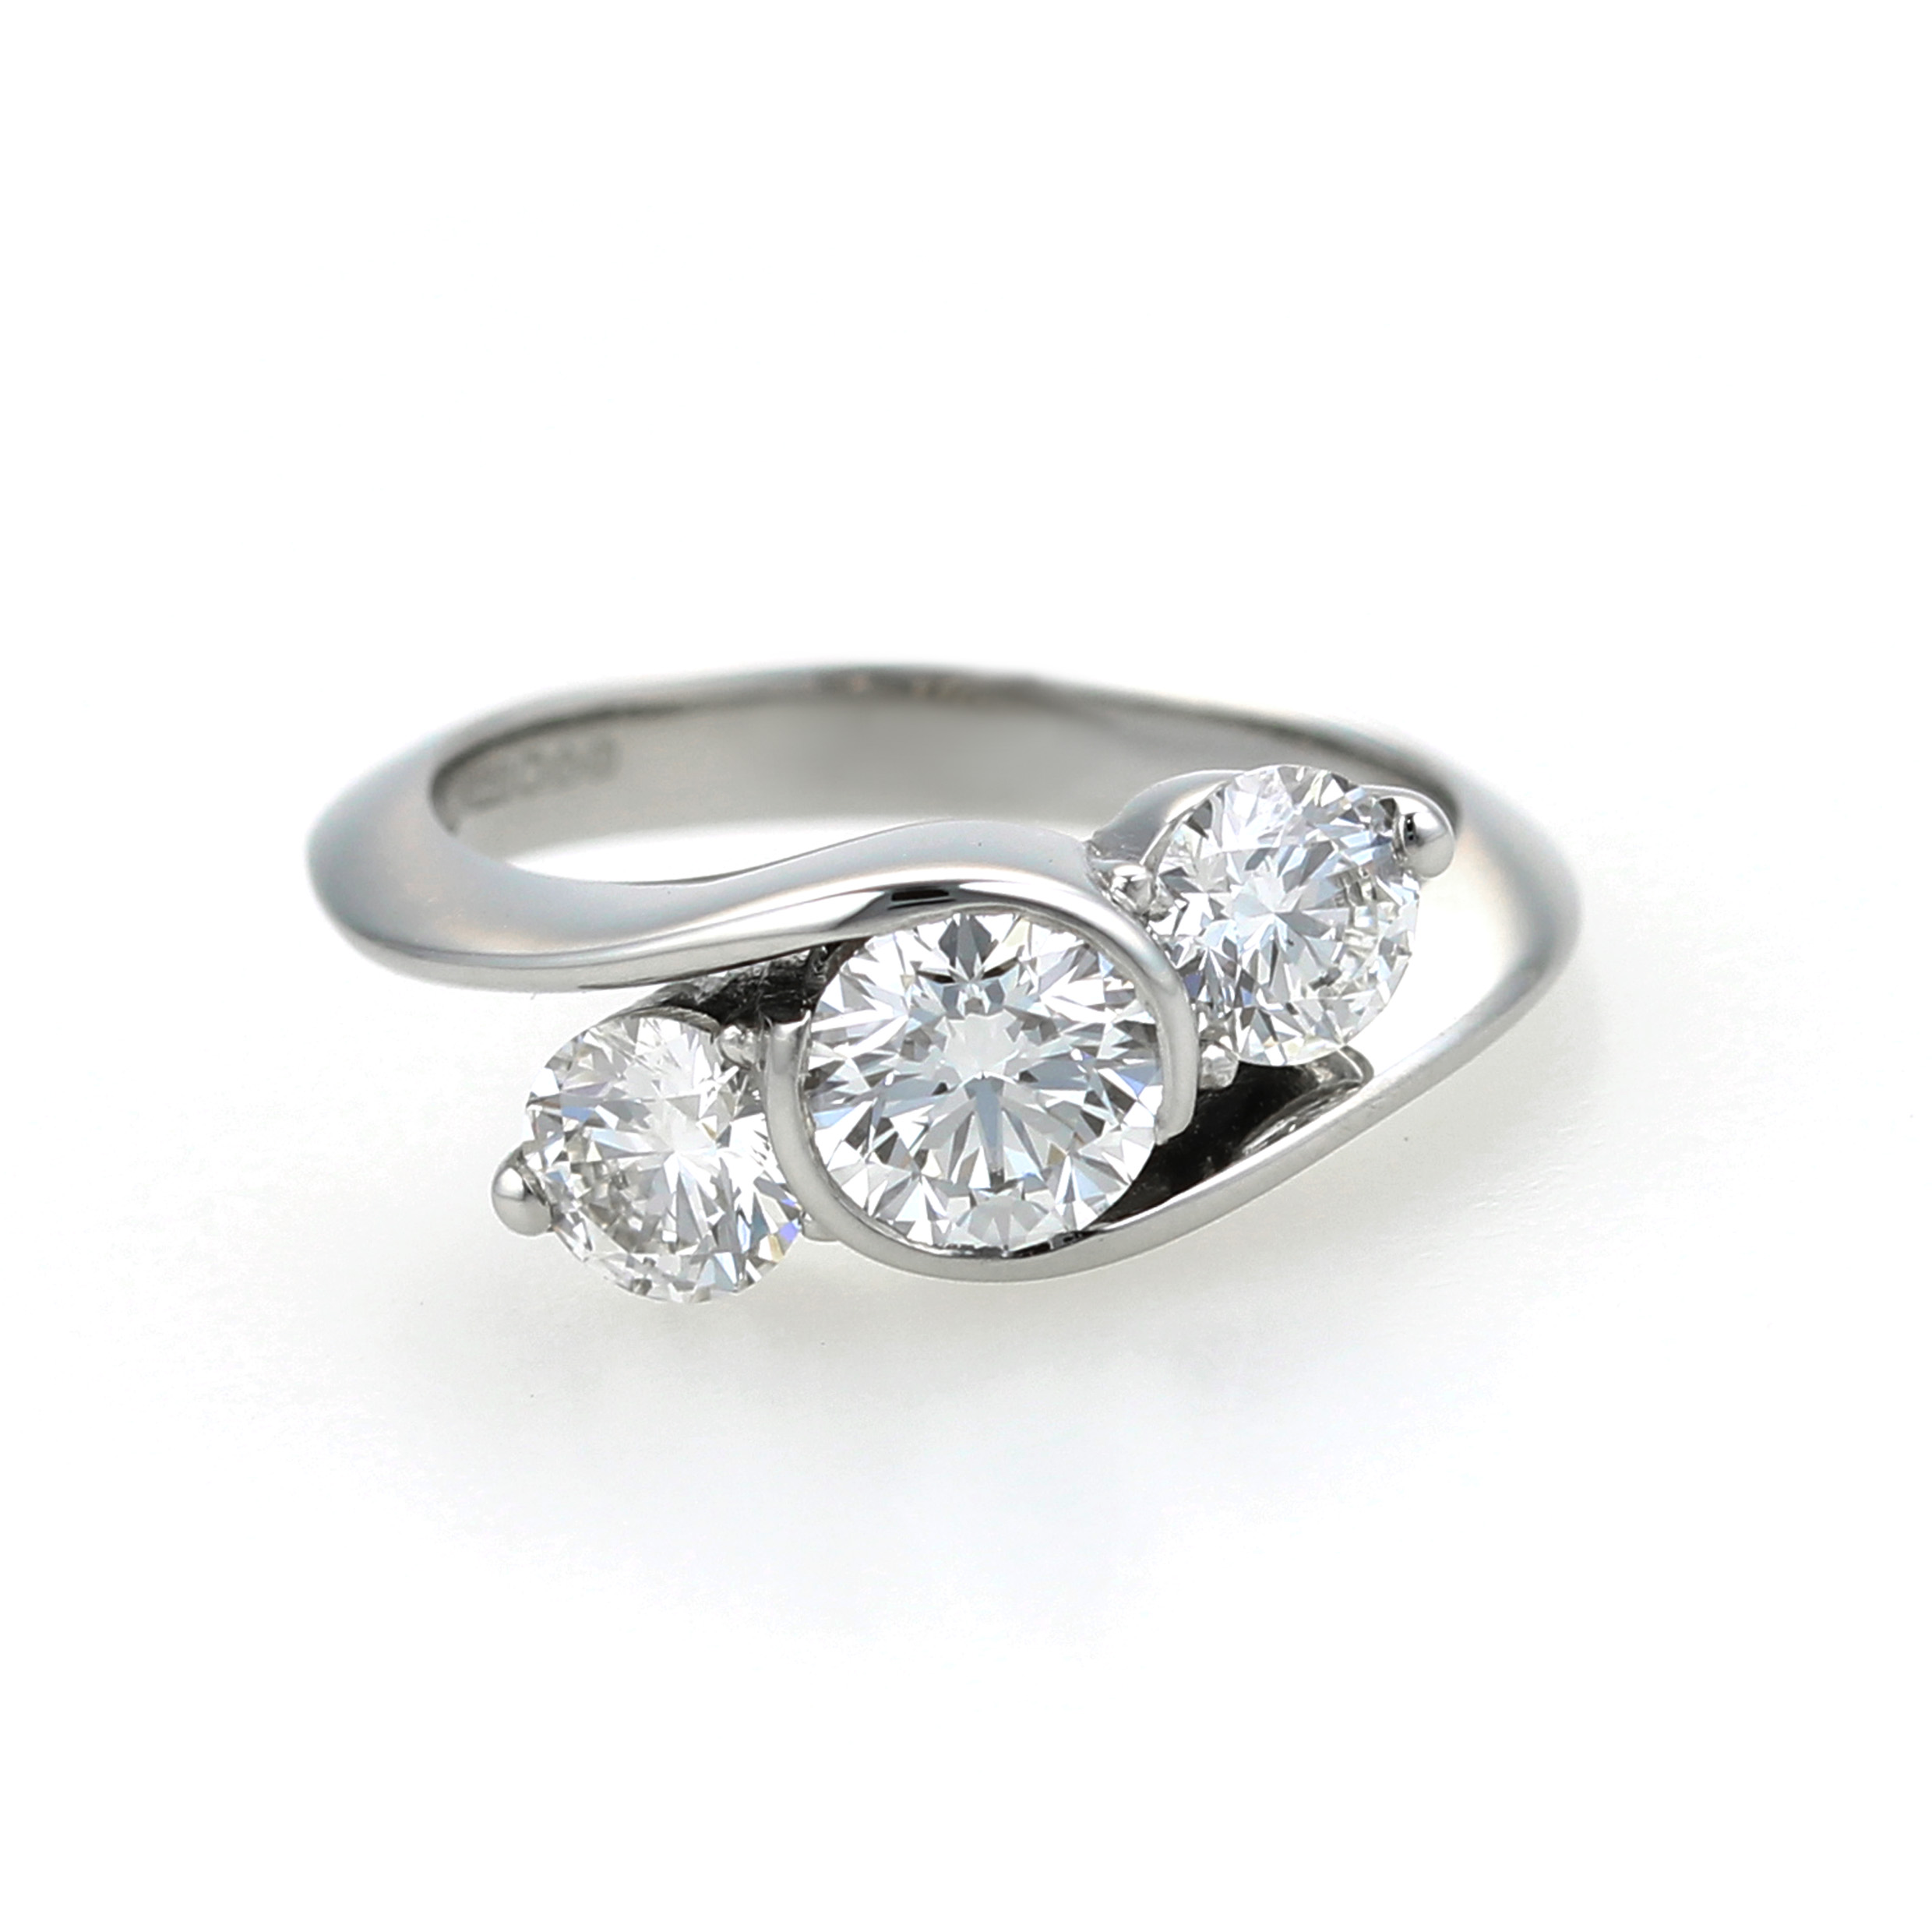 aimee platinum winstone uk ring jeweller engagement and bristol fine diamond lotus trilogy handmade rings